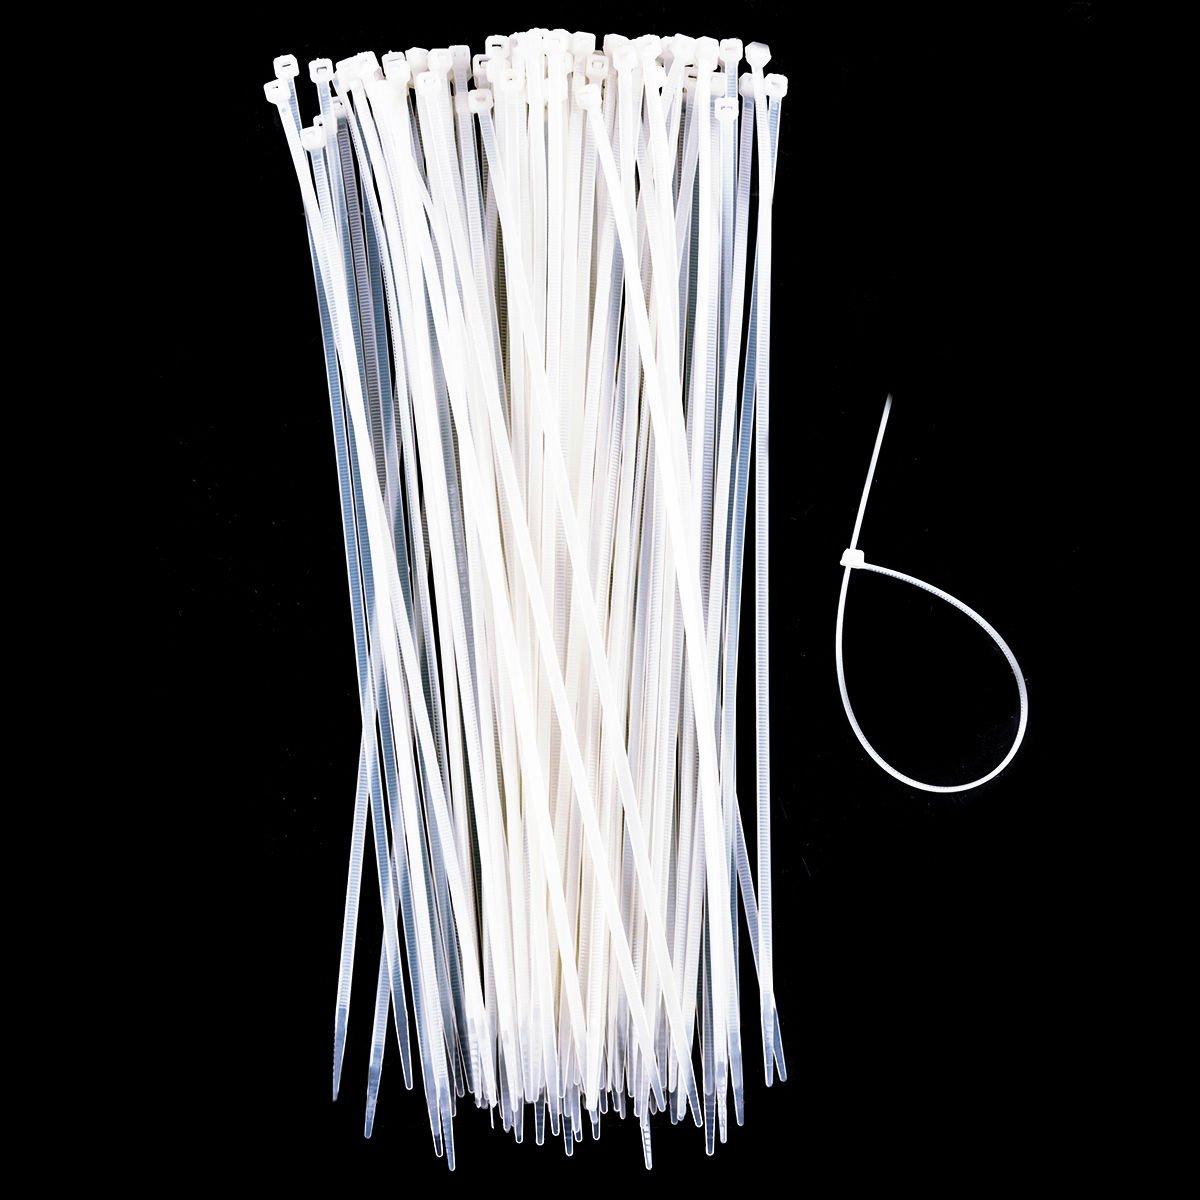 Toolsempire 1000 Pcs 12 inch Self Locking Cable Ties Nylon Zip Trim Wrap Network Cable for Home Office Garage Workshop (White)